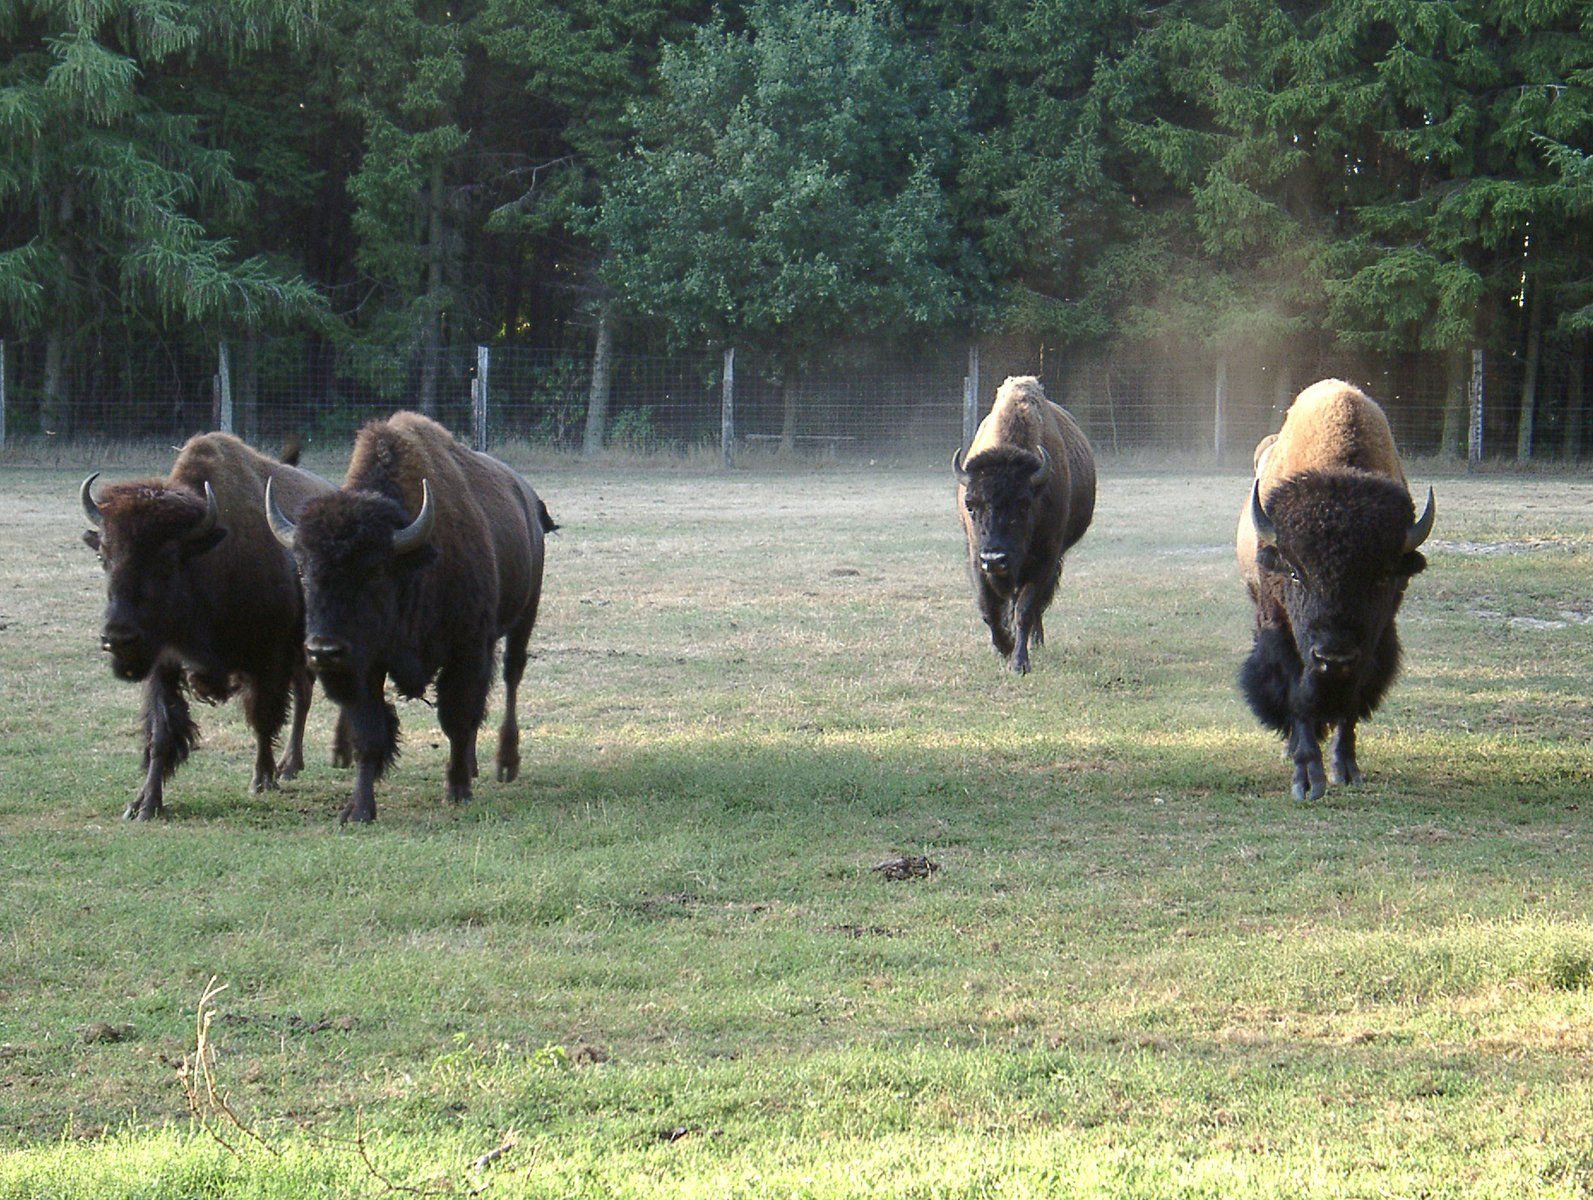 Bison coming